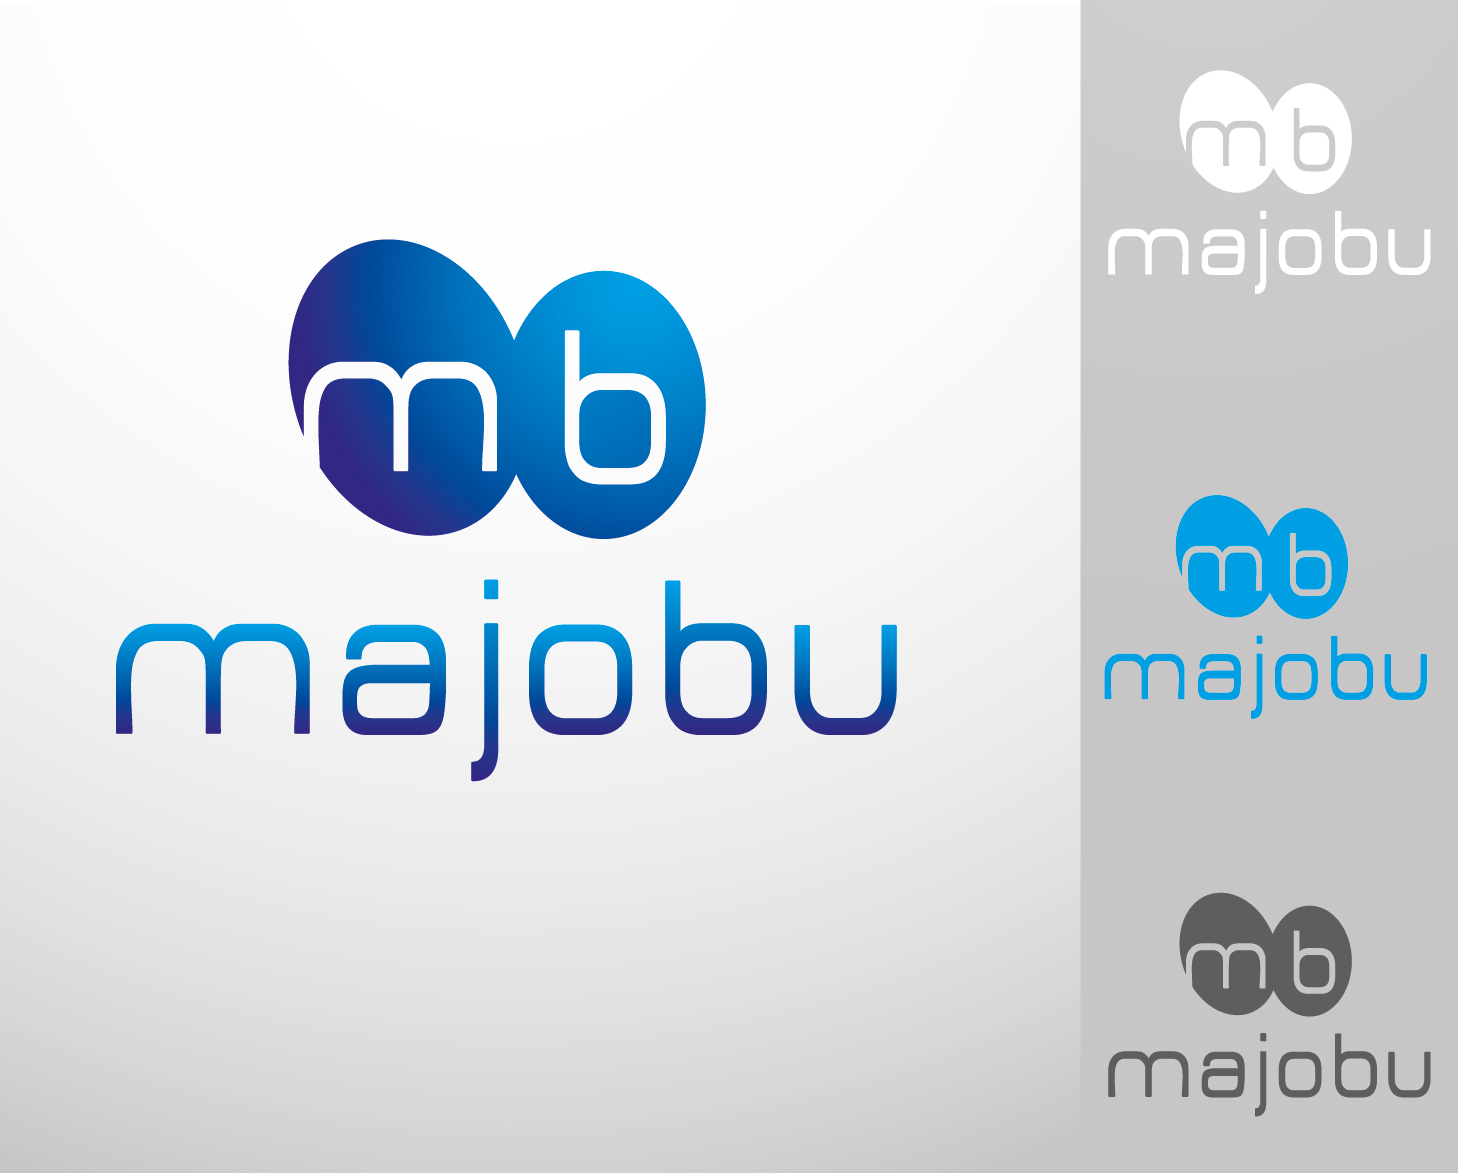 Logo Design by VENTSISLAV KOVACHEV - Entry No. 84 in the Logo Design Contest Inspiring Logo Design for Majobu.